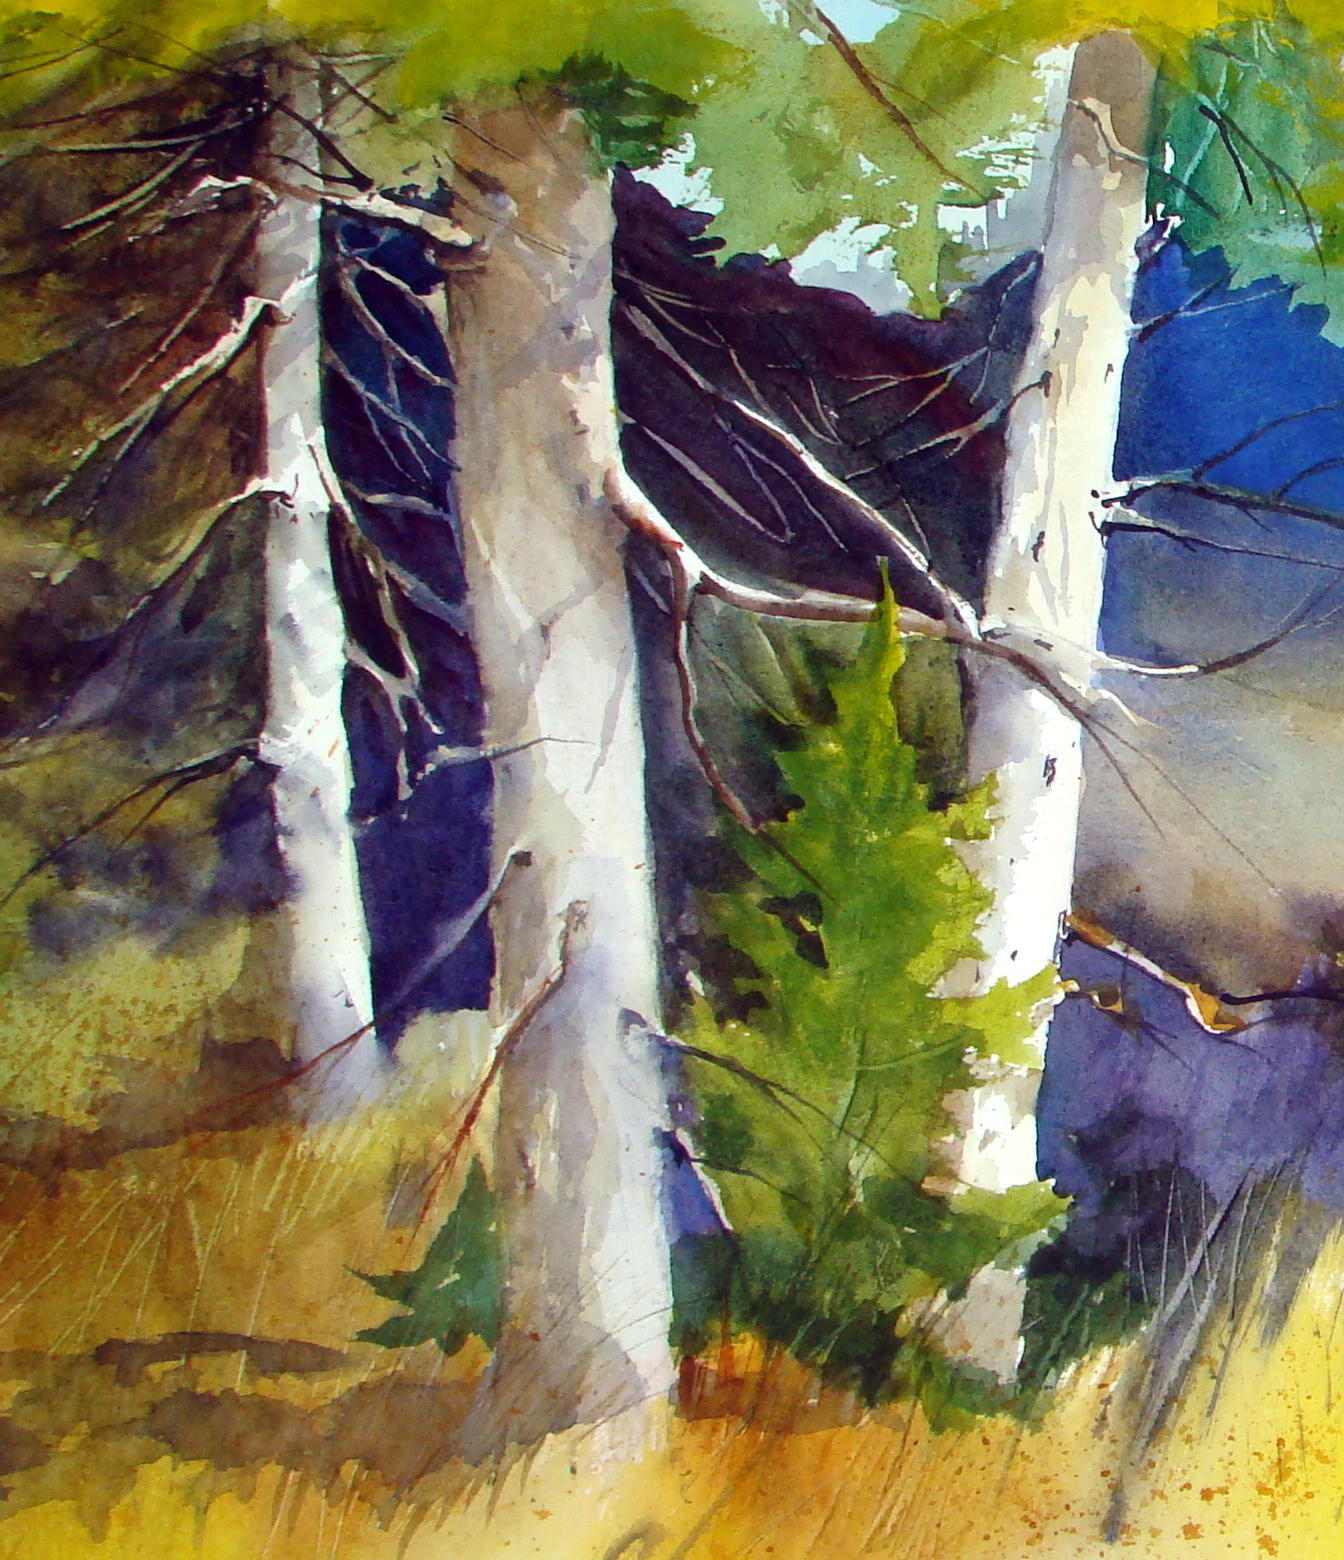 PUP CREEK GALLERY & STUDIO : ARTIST SUE PORTER